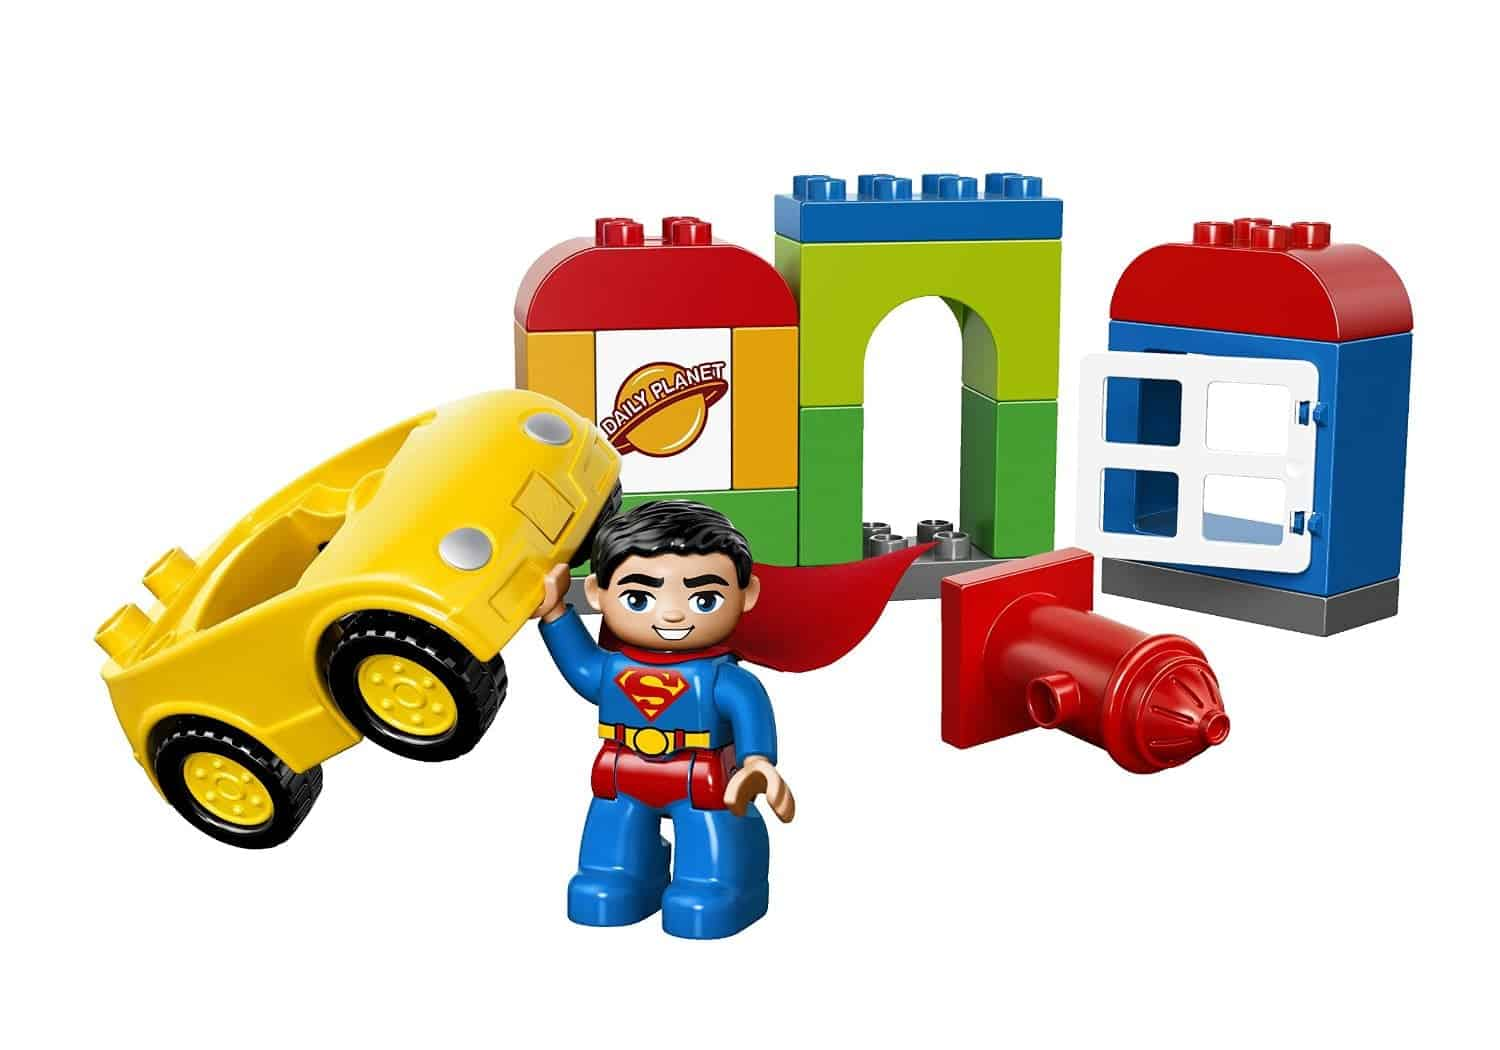 Lego Gift Ideas by Age - Toddler to Twelve Years: Superman Building Set | www.thepinningmama.com